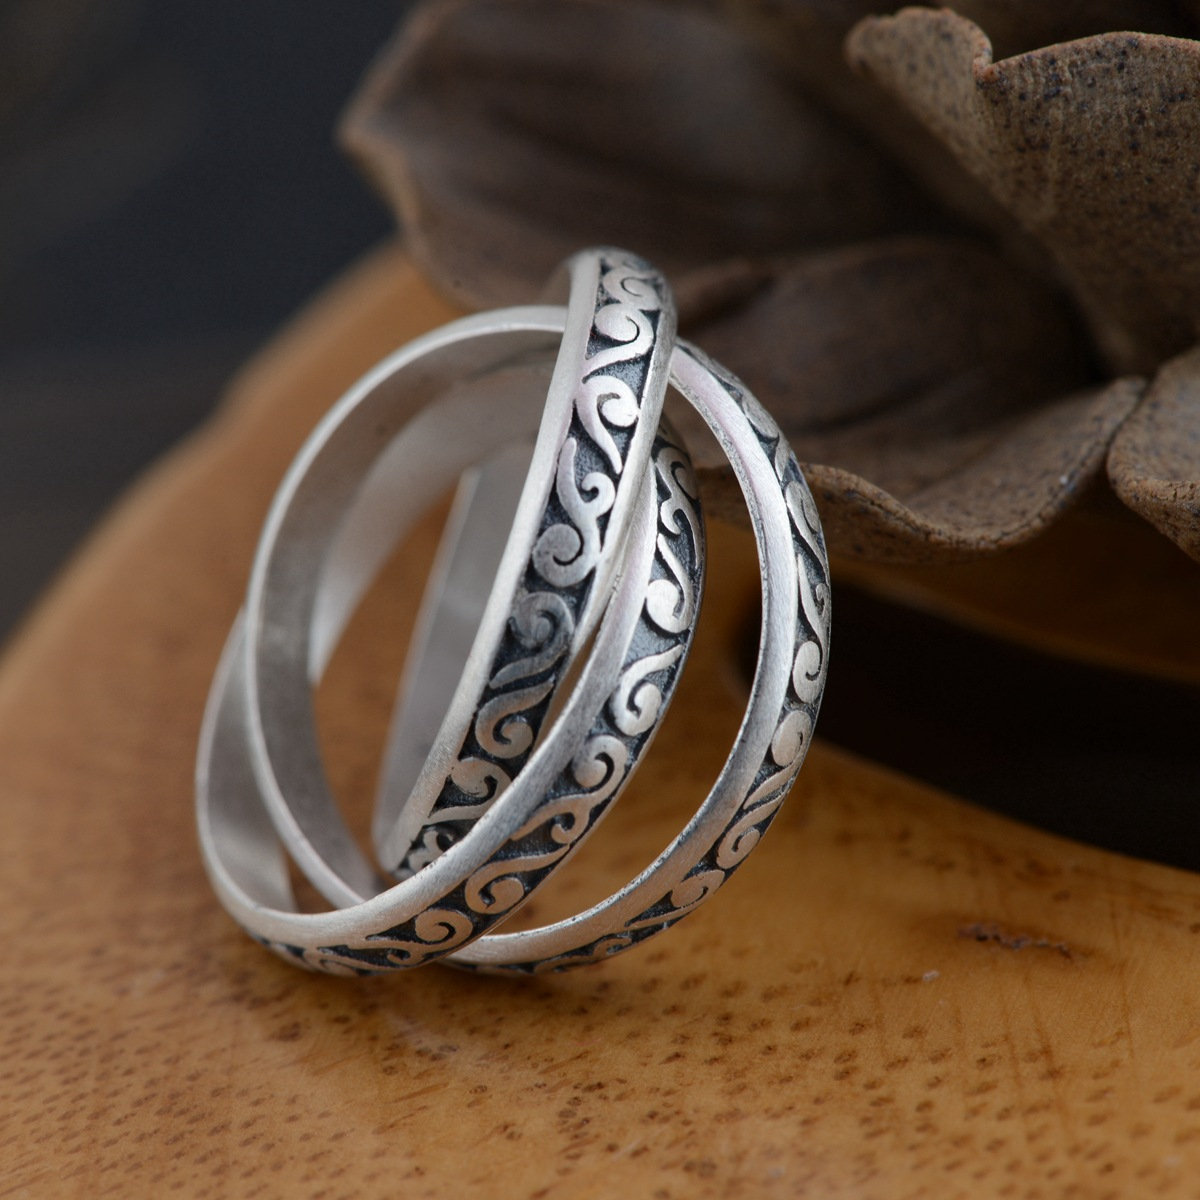 Thai silver wholesale S990 fine silver ring antique matte process design individuality series of three new couples